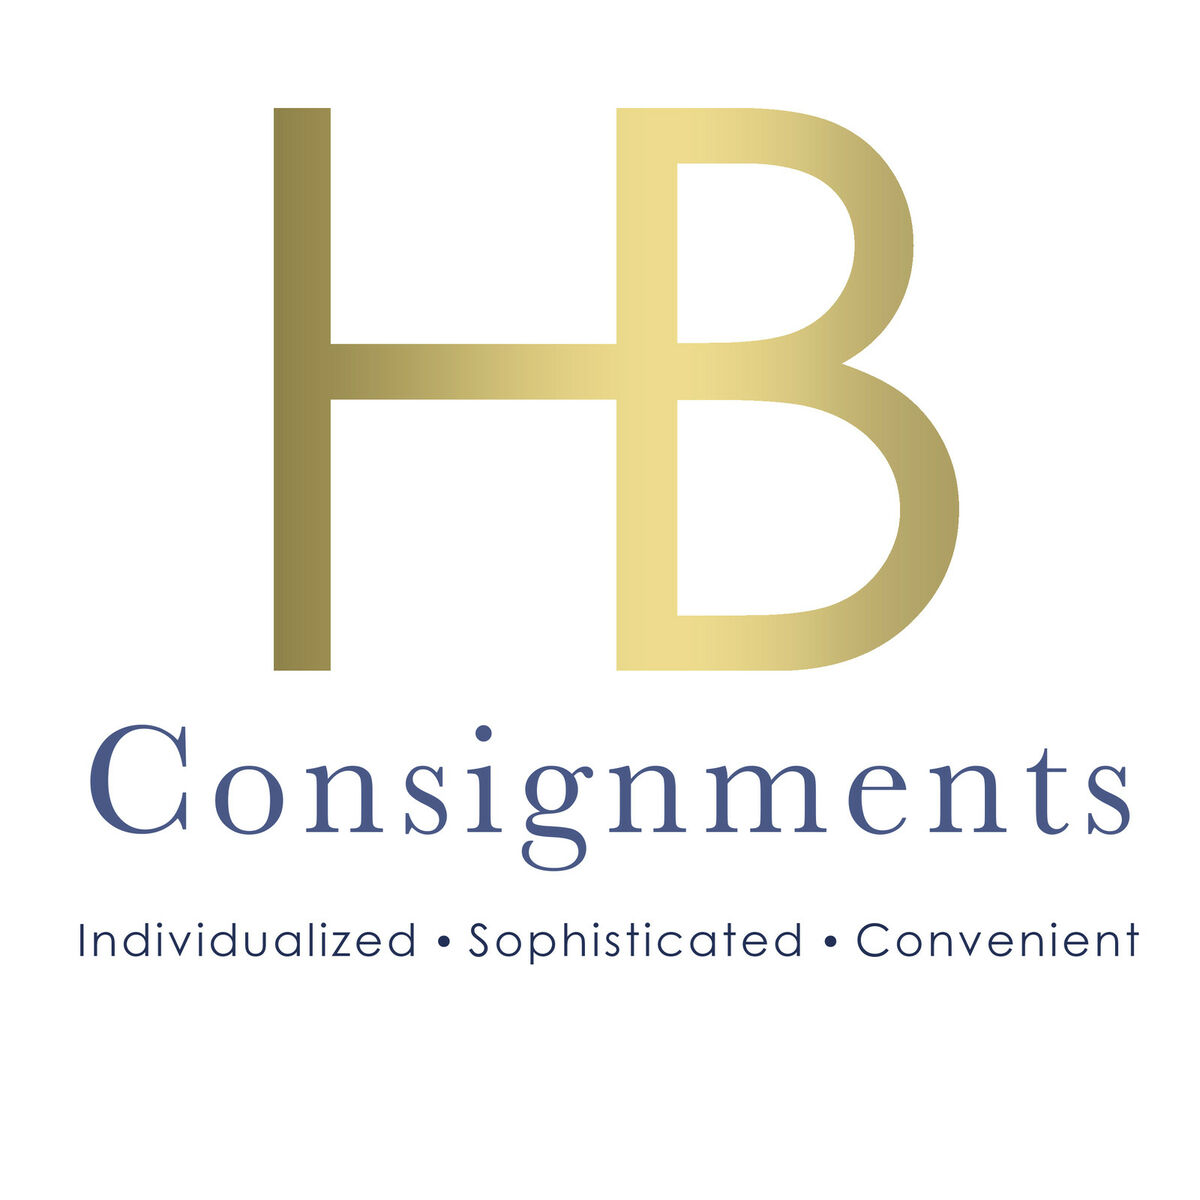 hbconsignments